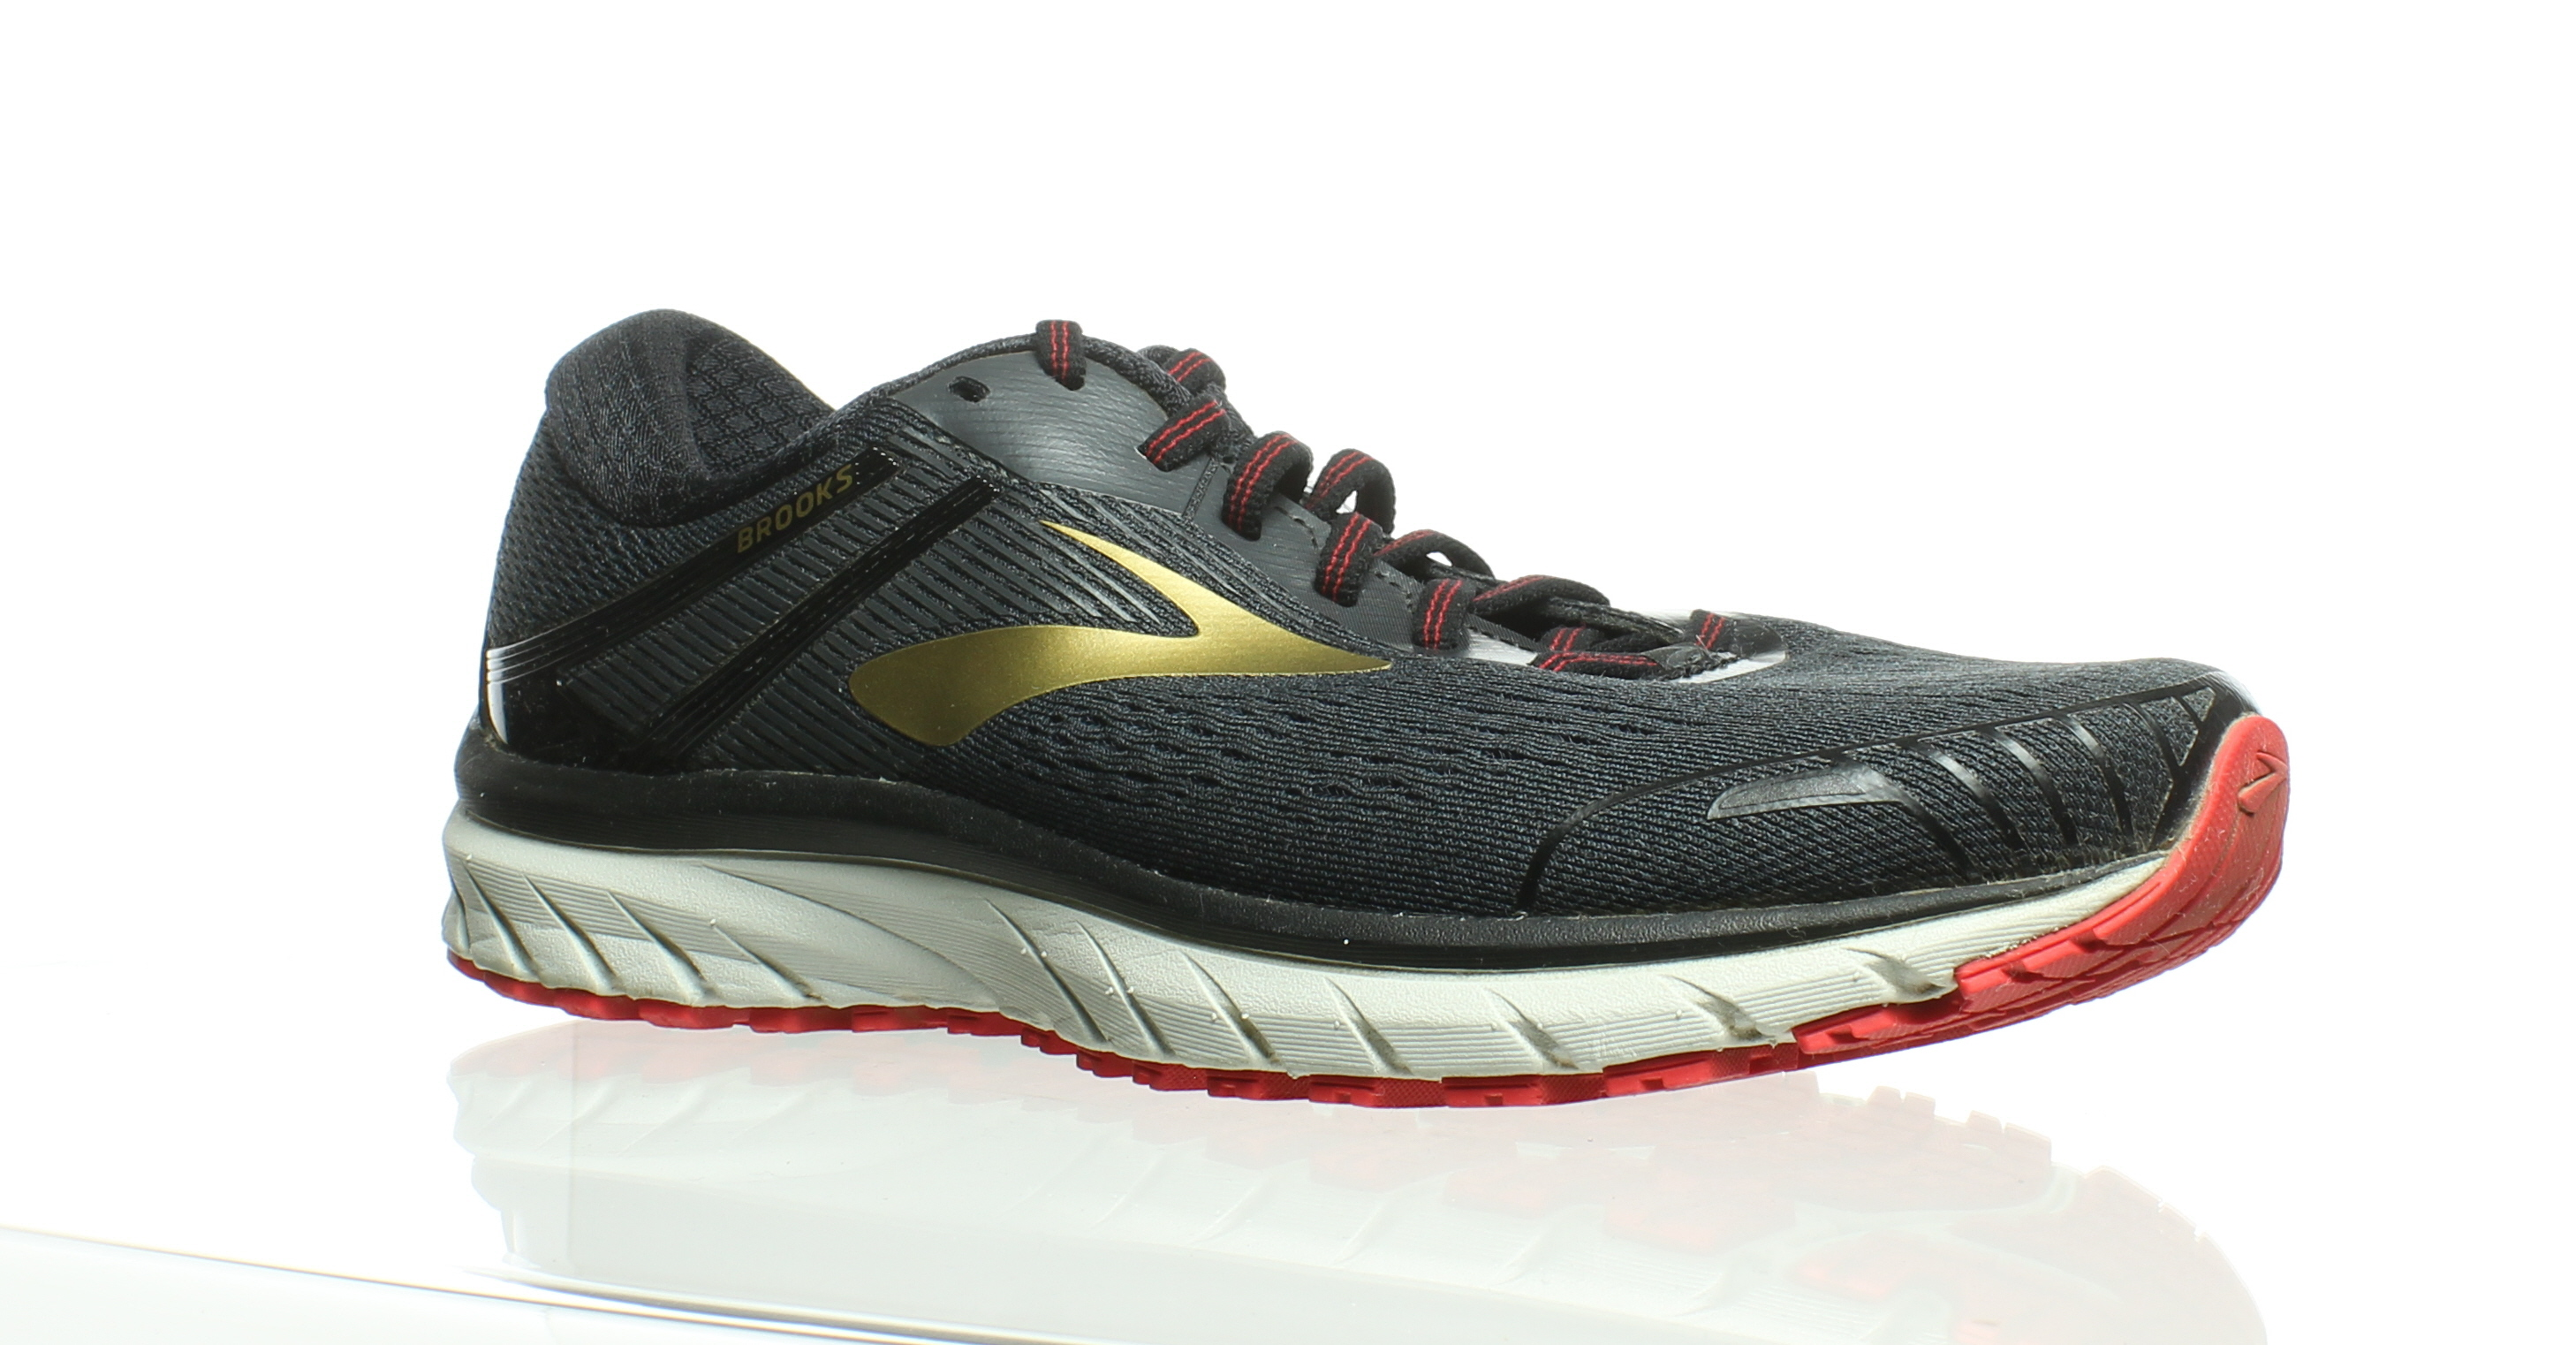 90c978d73c536 Details about Brooks Mens Adrenaline Gts 18 Black Gold Red Running Shoes  Size 7.5 (210662)